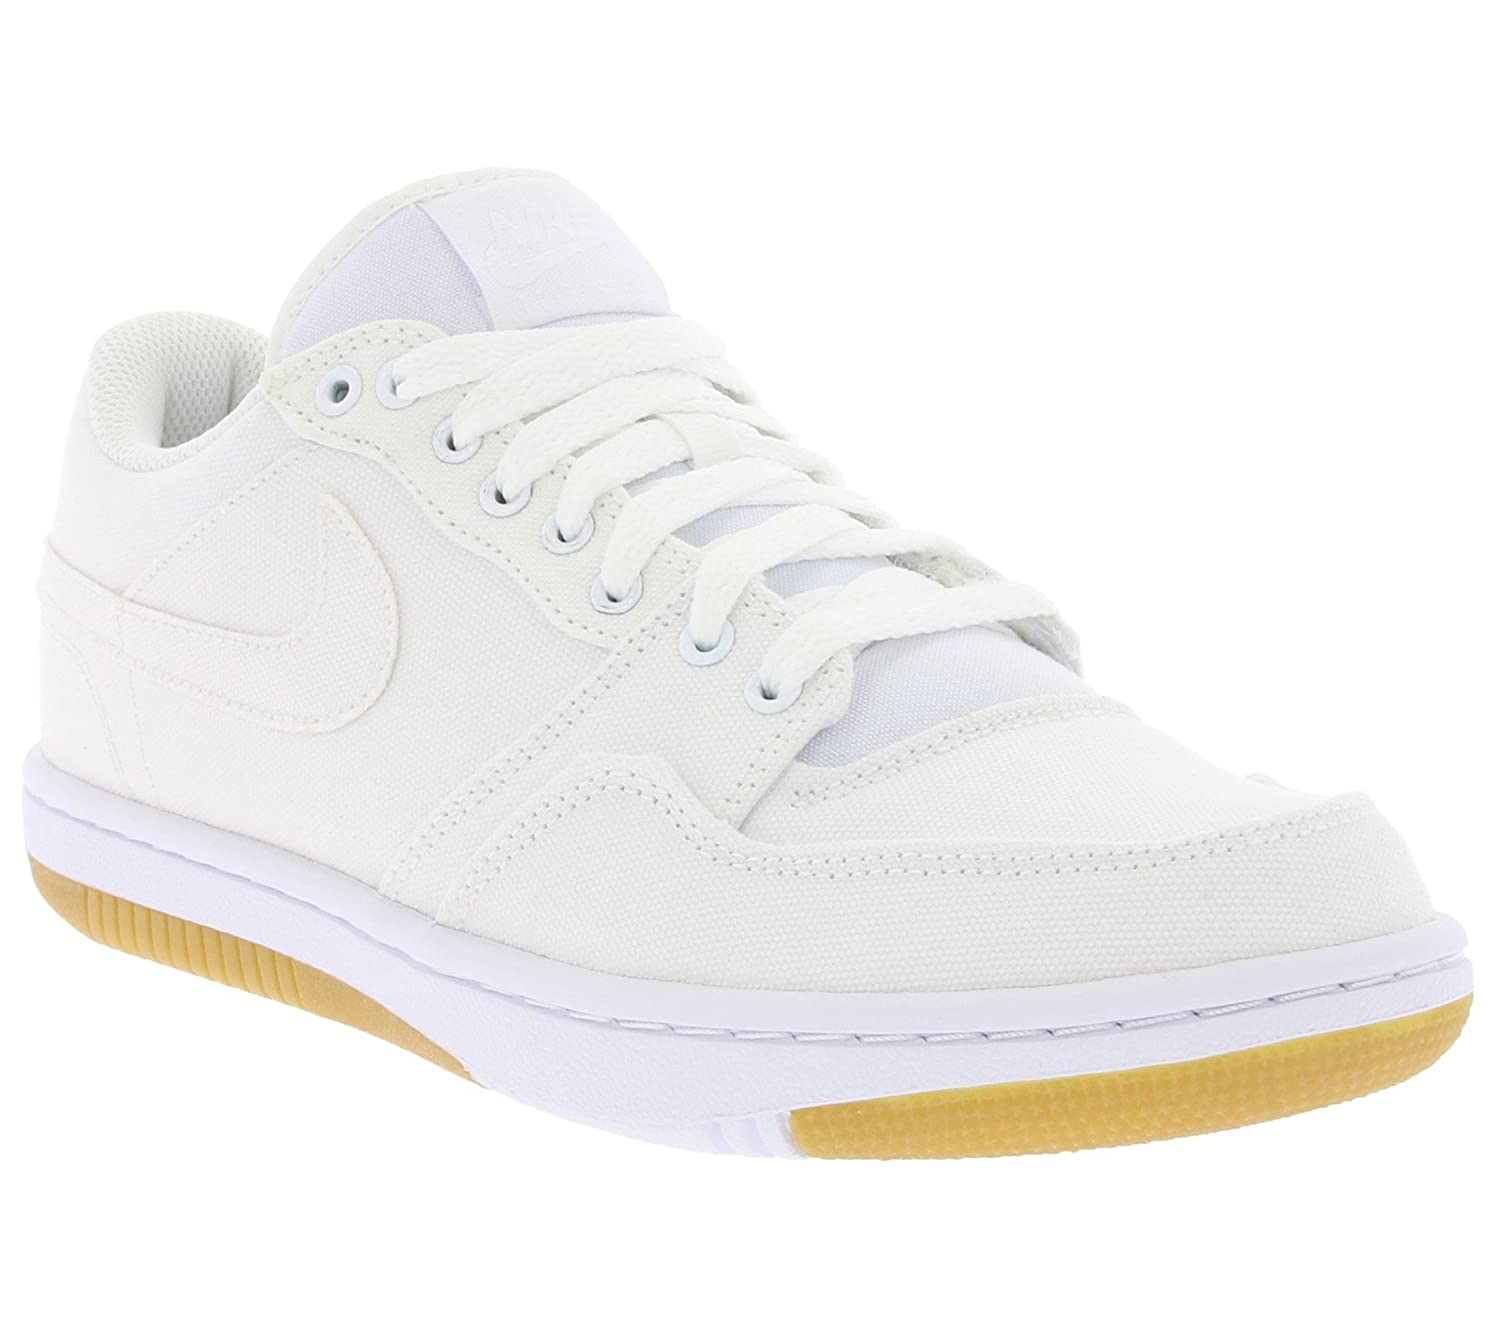 Nike - Court Force Low - - - 313561119 - Farbe  Weiß - Größe  45.5 2acfd7